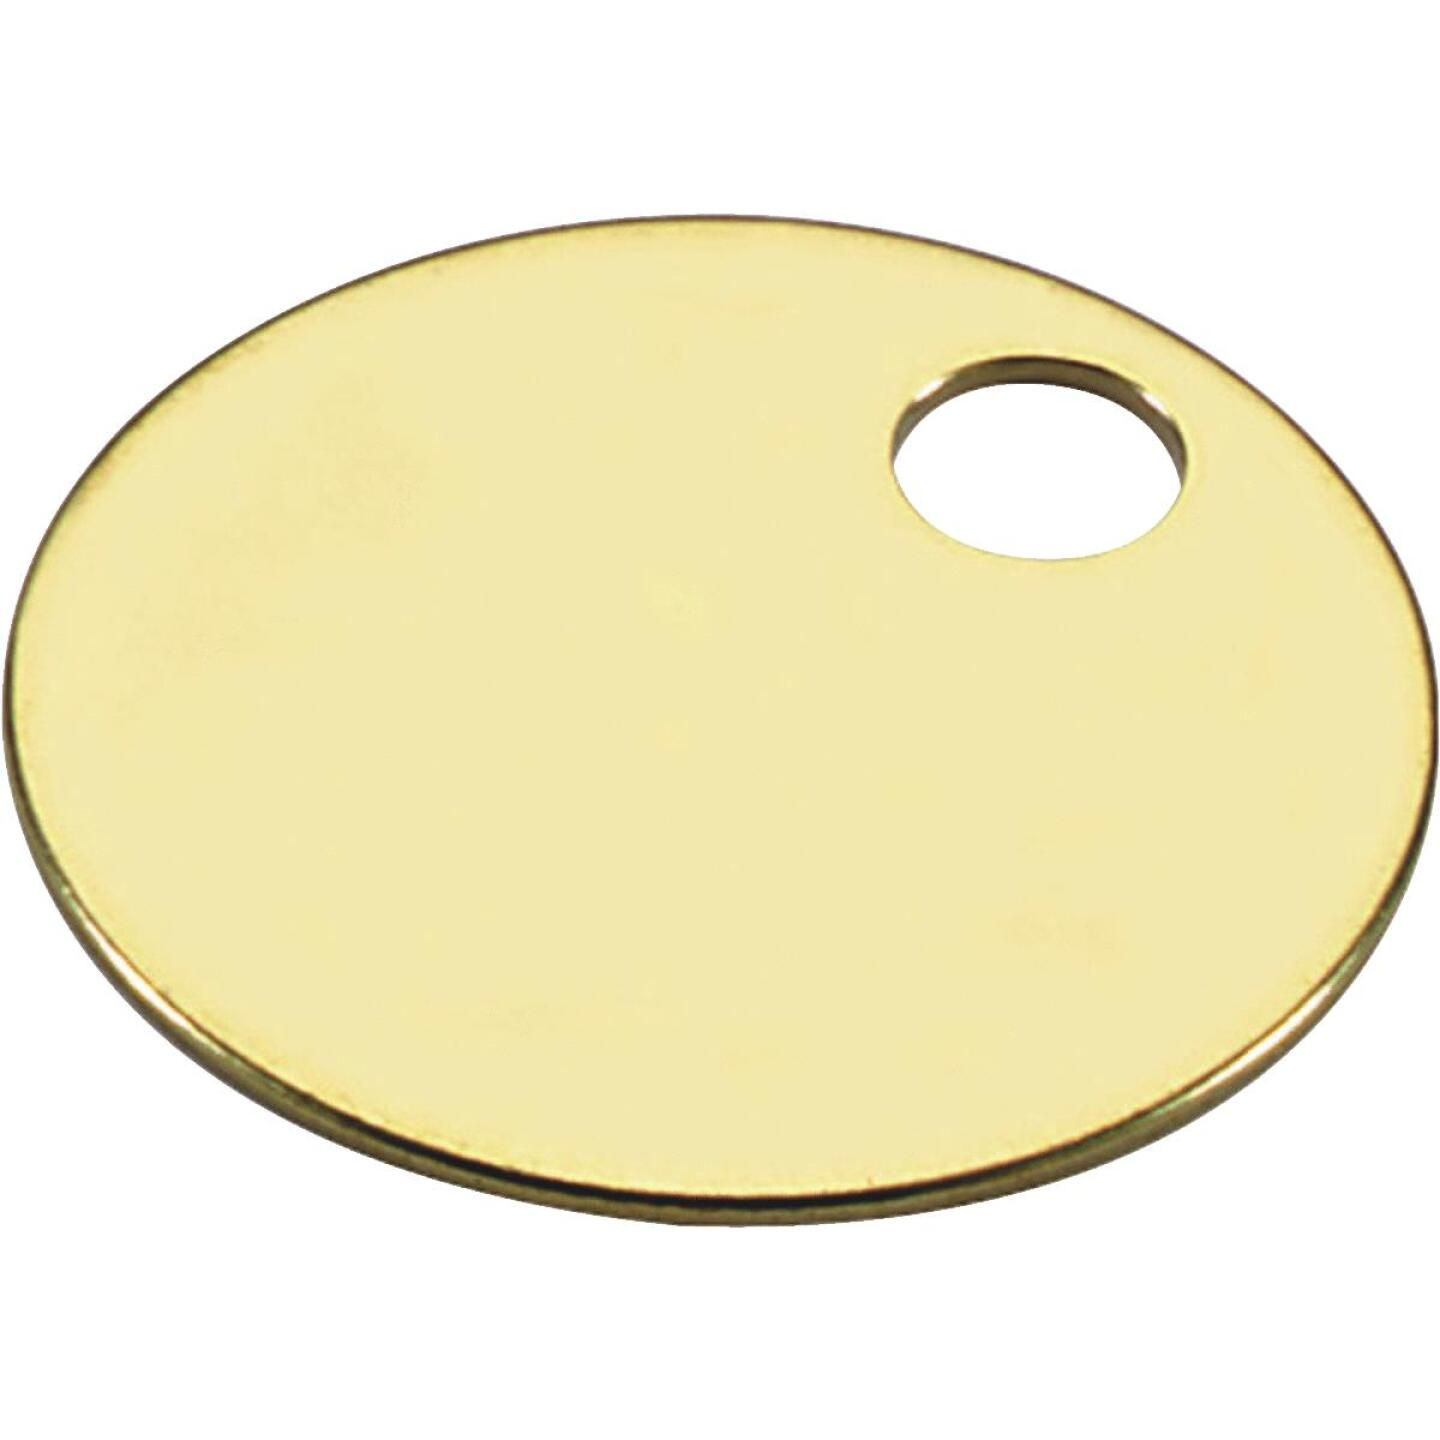 Lucky Line Engravable Tag 1-1/4 In. Brass Key Tag, (100-Pack) Image 1